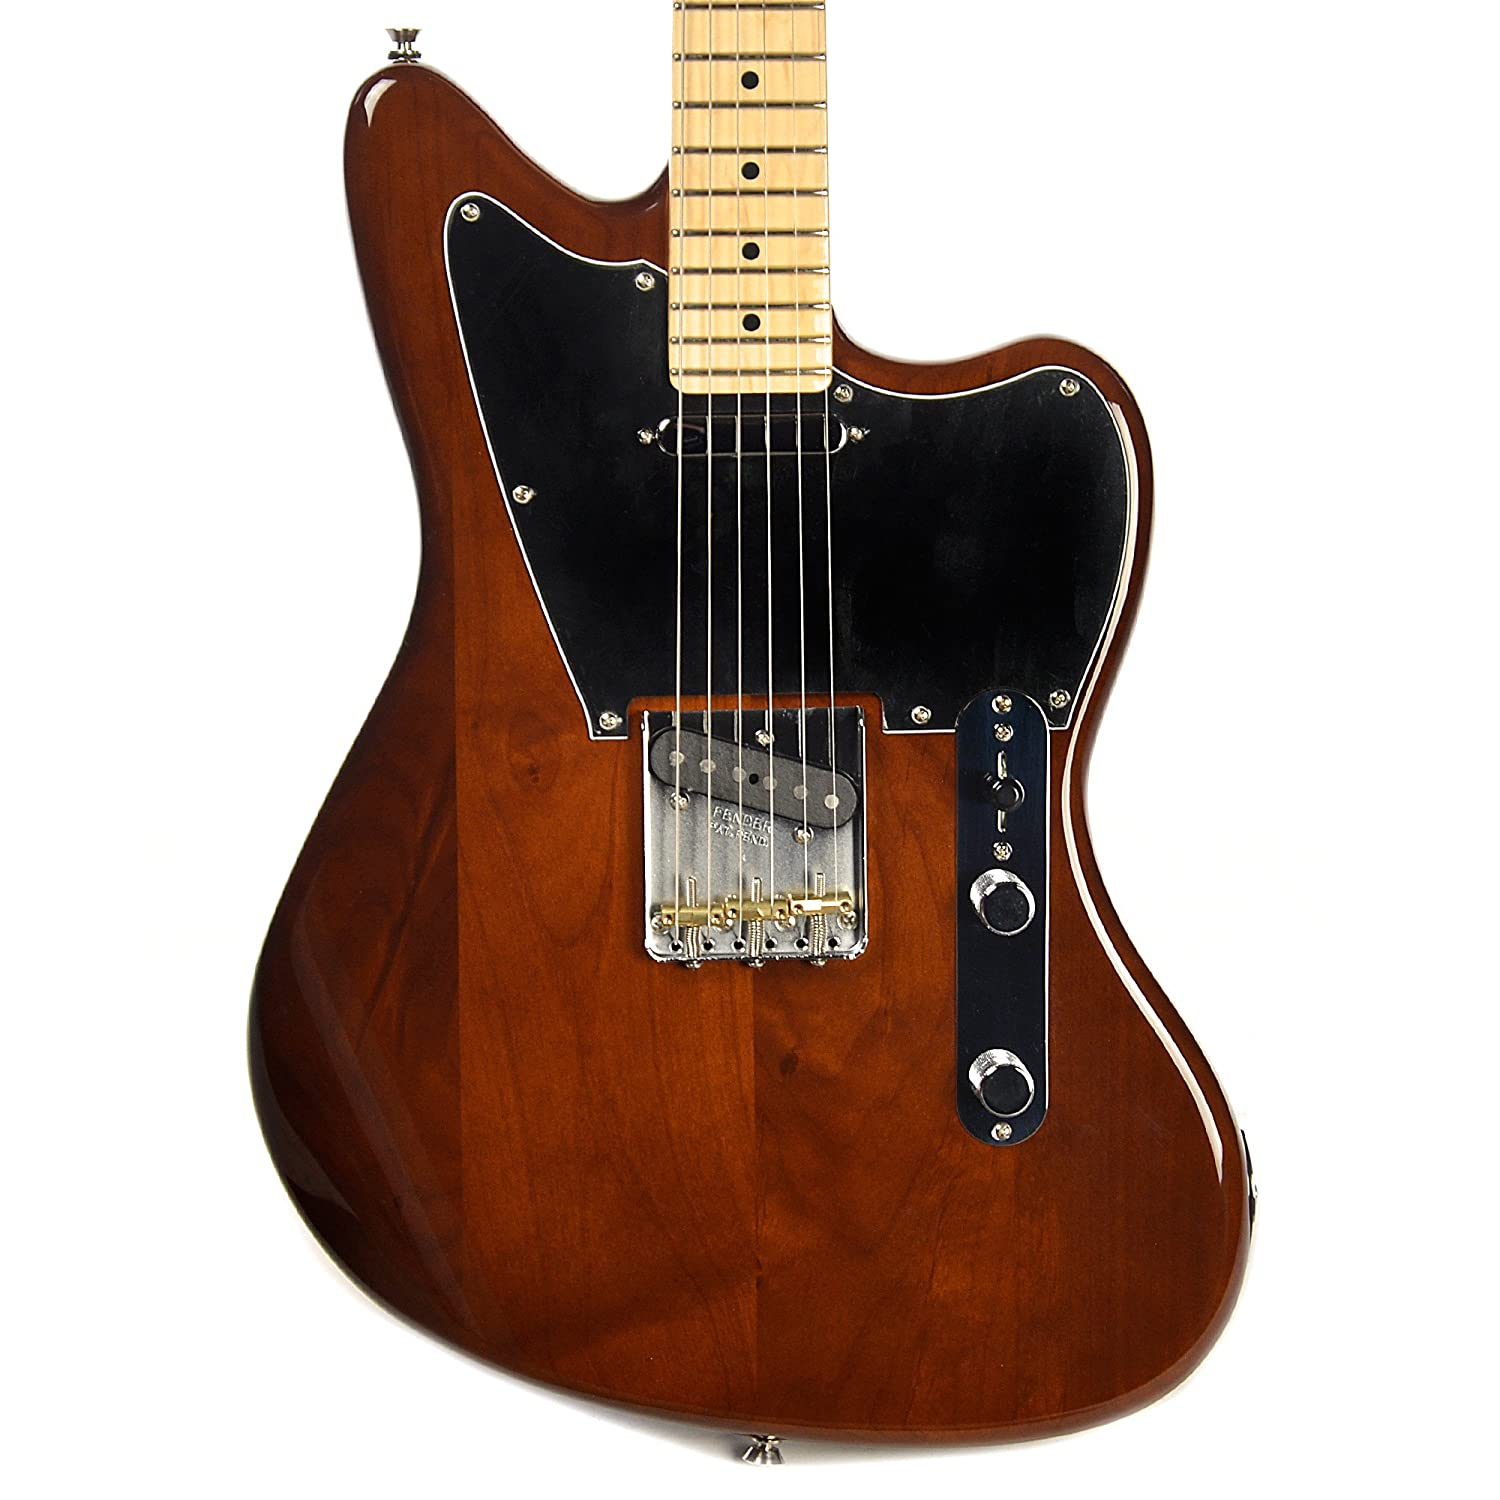 Fender American Pro Offset Telecaster Walnut Limited Edition